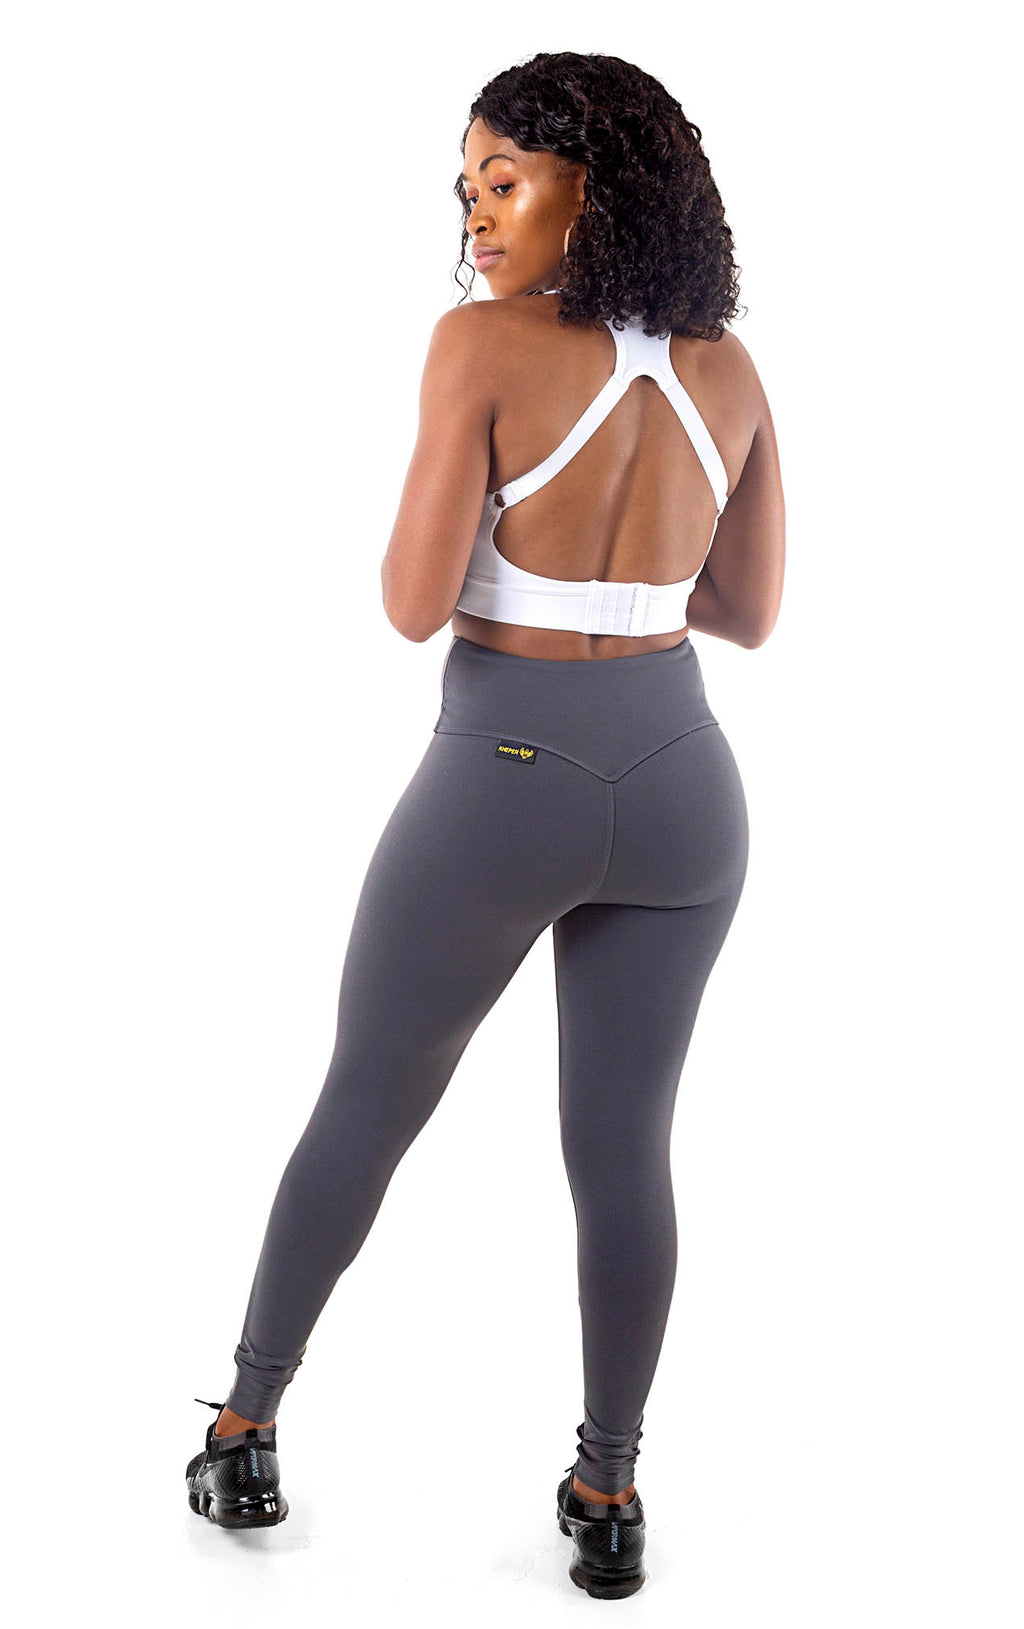 Kheper V Pop High Waist Gym Tights - Grey